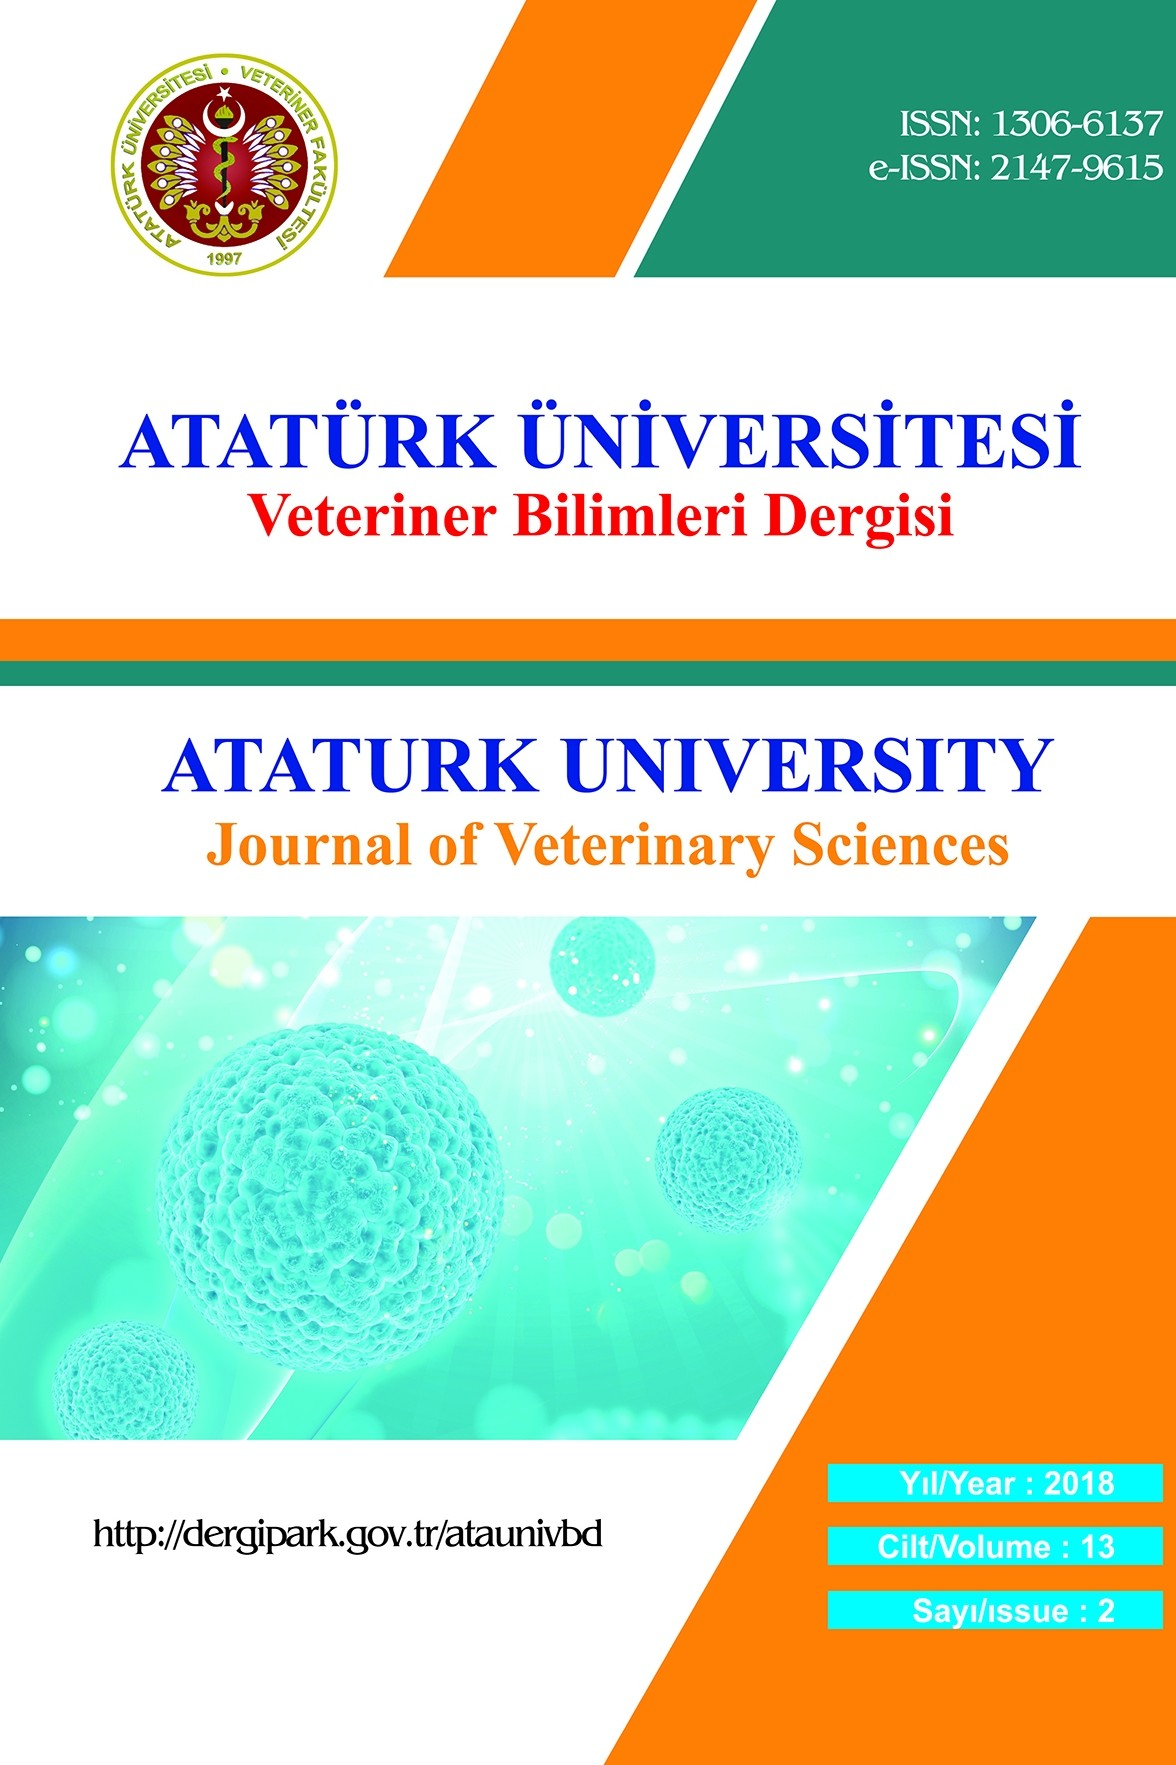 Atatürk University Journal of Veterinary Sciences